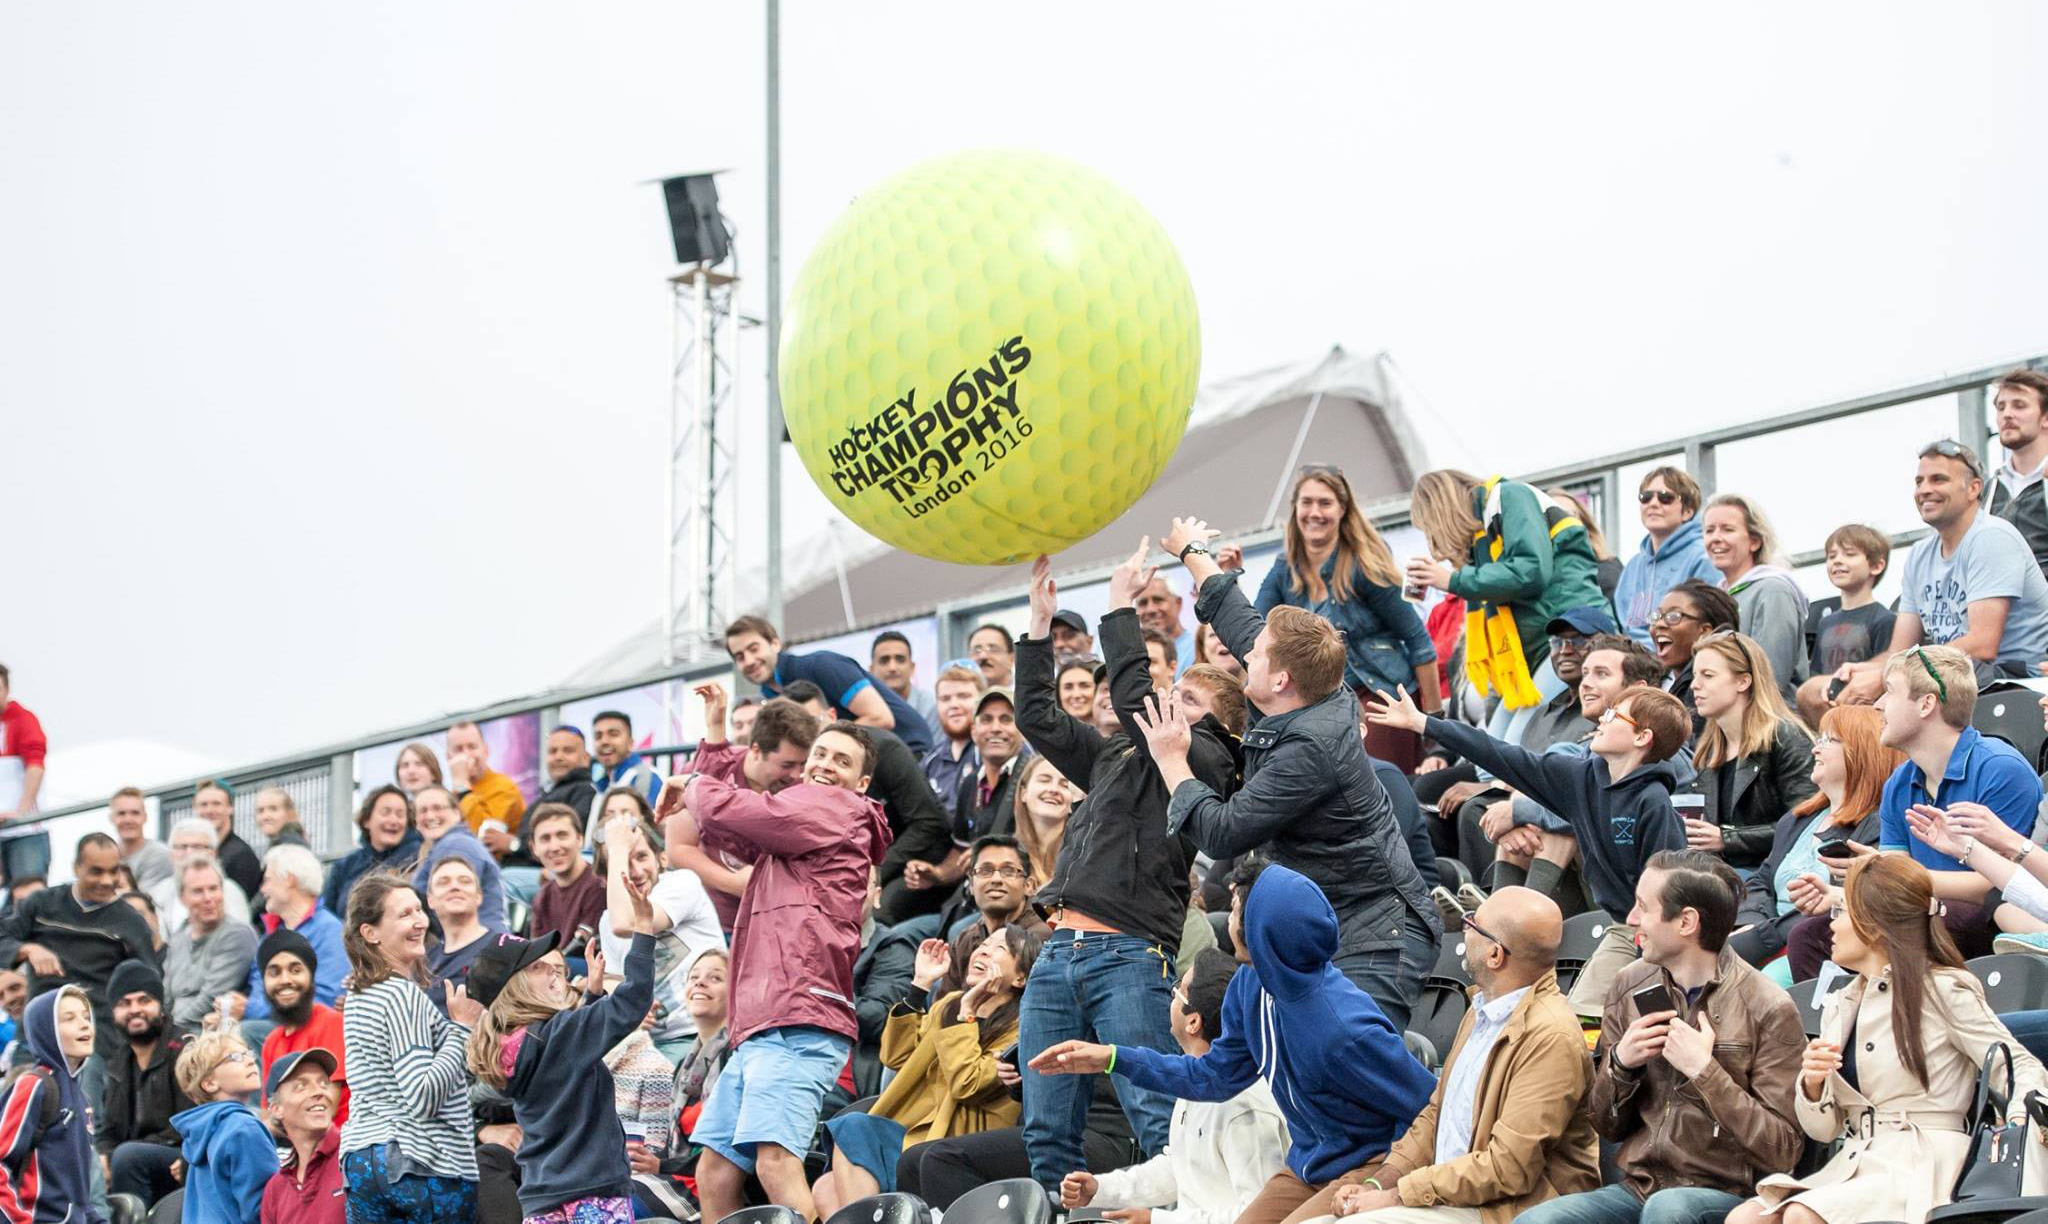 ola-ball, giant inflatable ball, giant inflatable ball price, giant inflatable ball produzione, giant ball concerts, giant beach ball, fan engagement grand stand, sponsorship activation, crowd surfing ball, sport sponsorship, 3e60sport